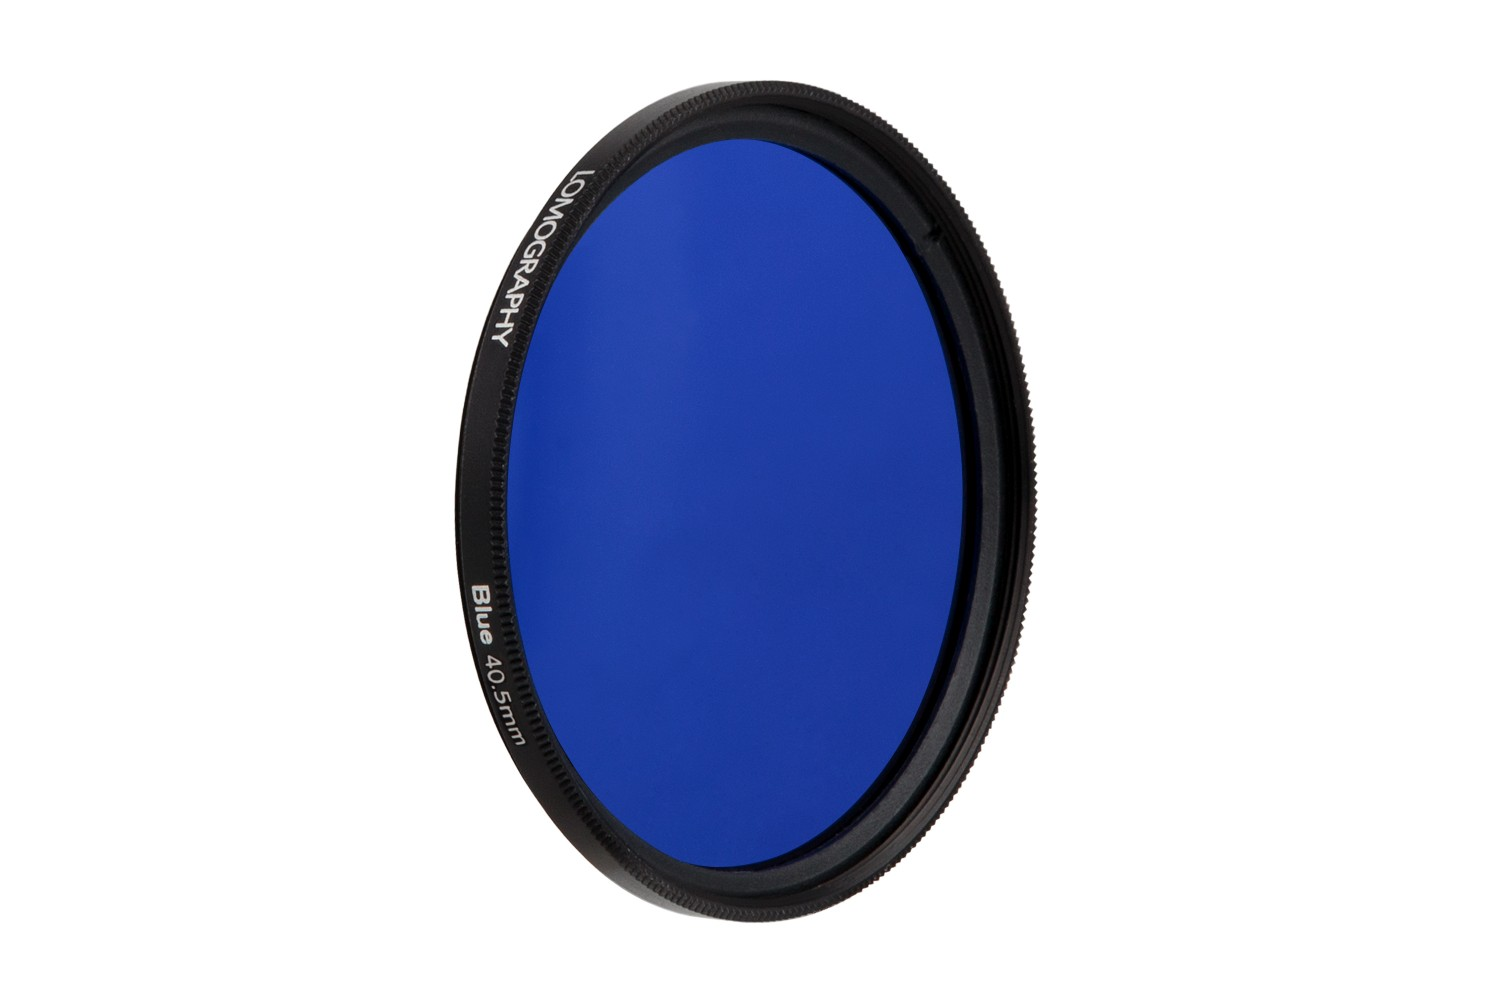 Lomography 40.5mm Lens Filter - Blue